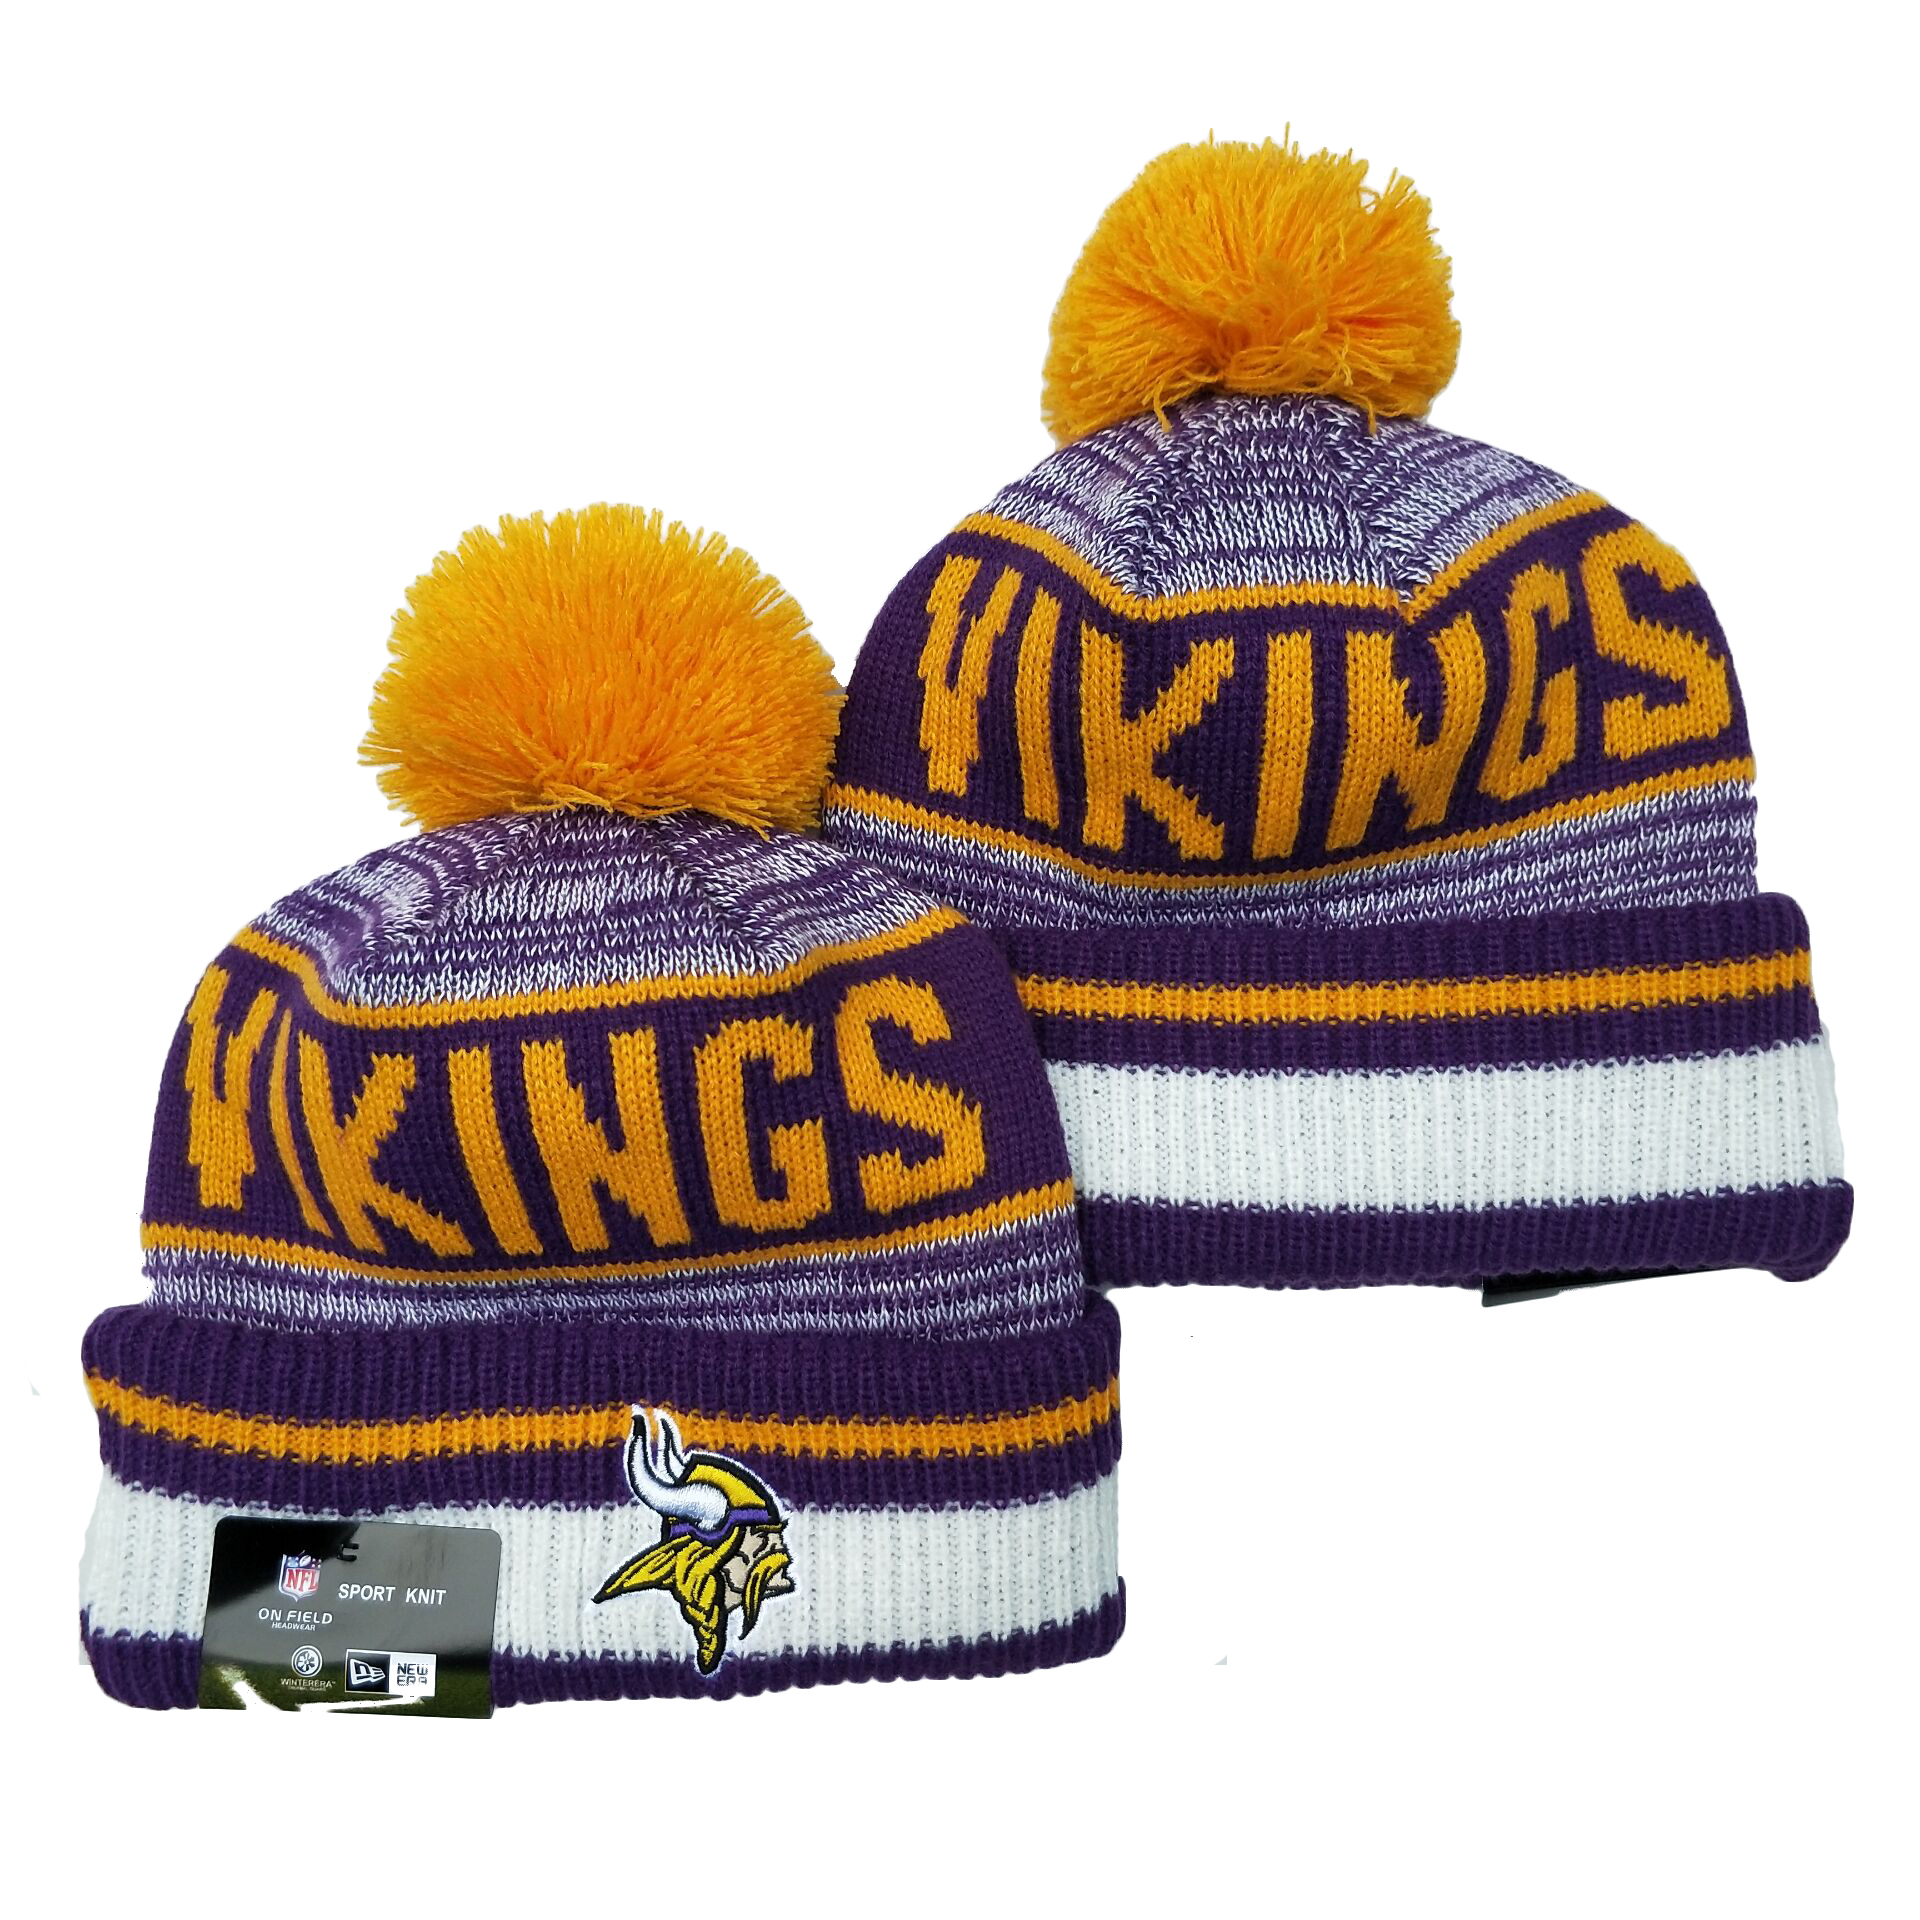 Minnesota Vikings Knit Hats 051